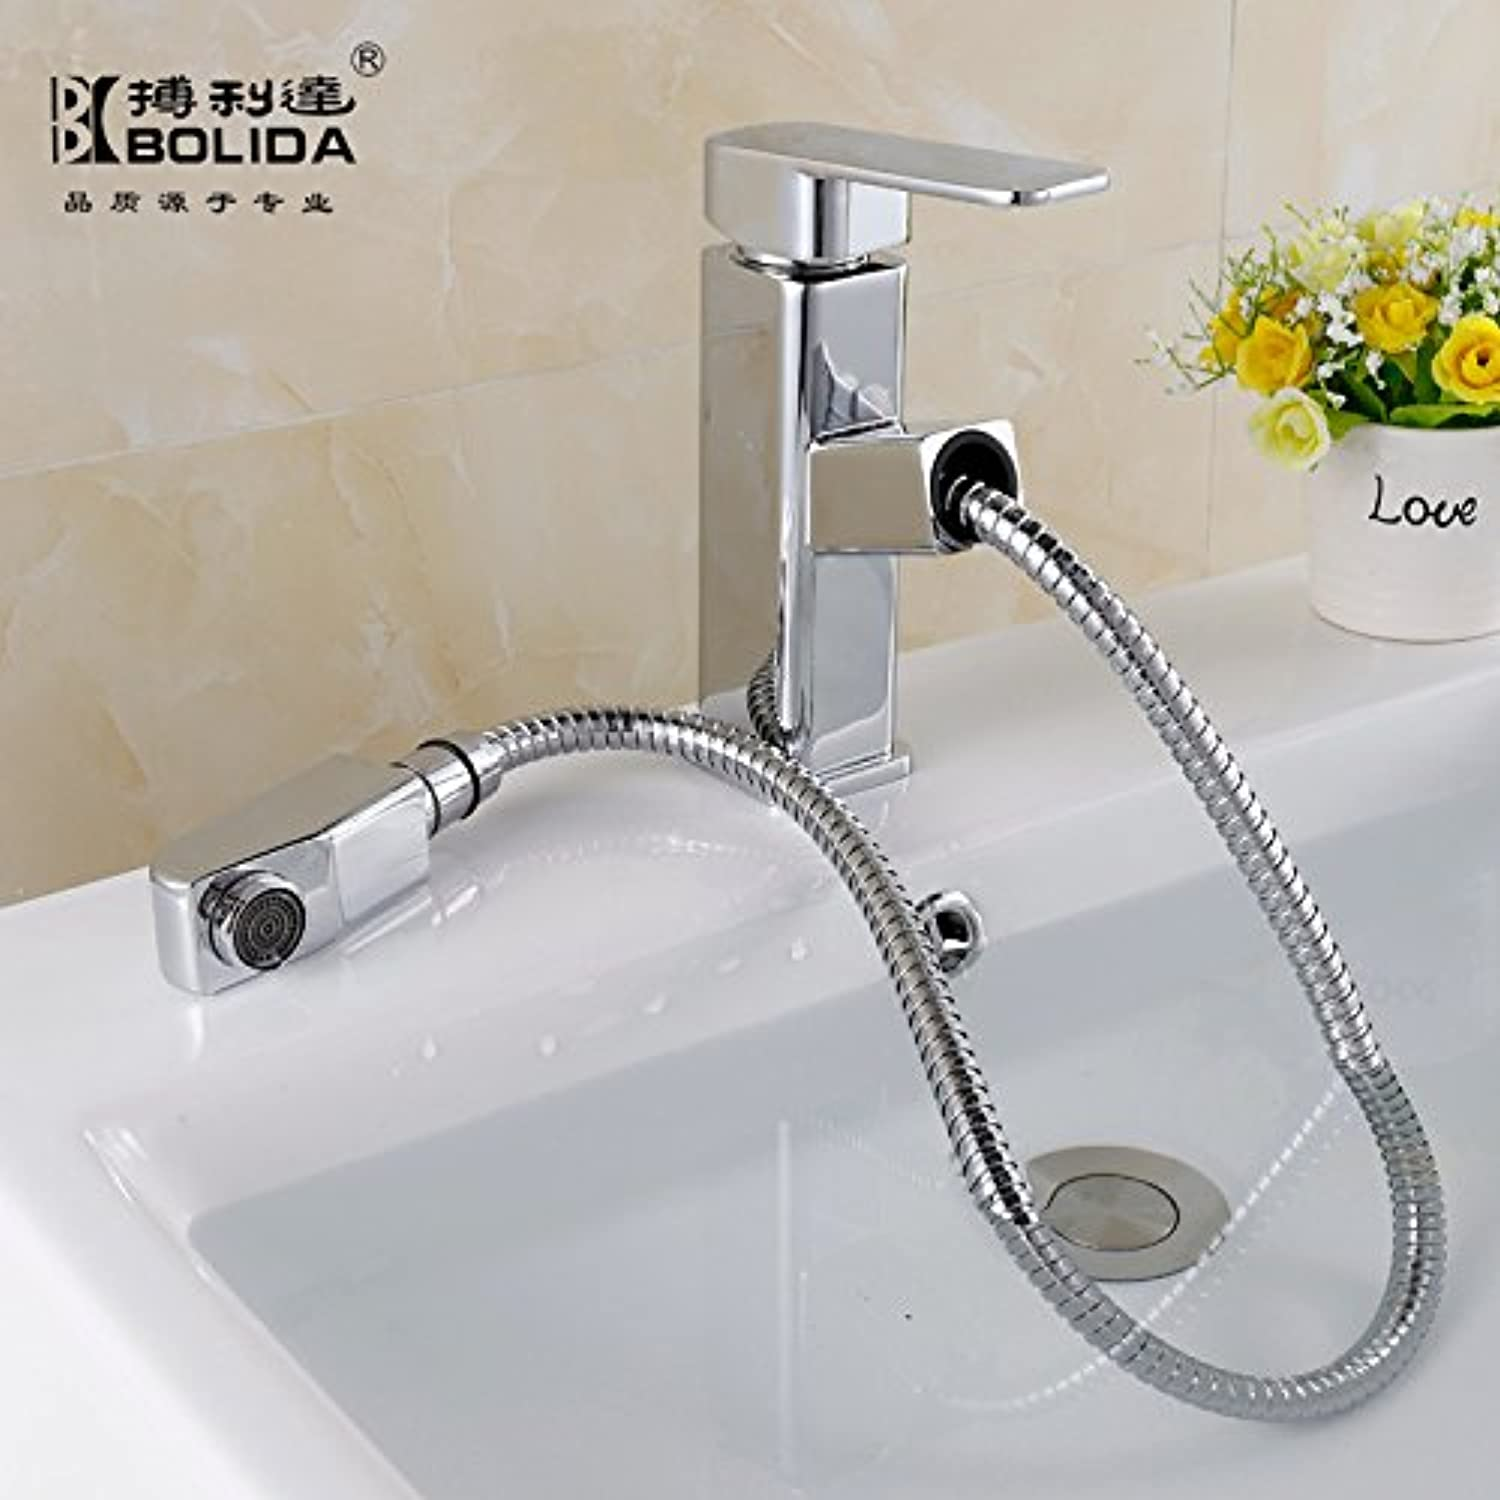 JIAHENGY Sink Mixer Faucet tap American creative modern minimalist fashion Swivel Pull Out with Combo Deck Mounted Vessel Handle Hole Toilet Kitchen bathroom